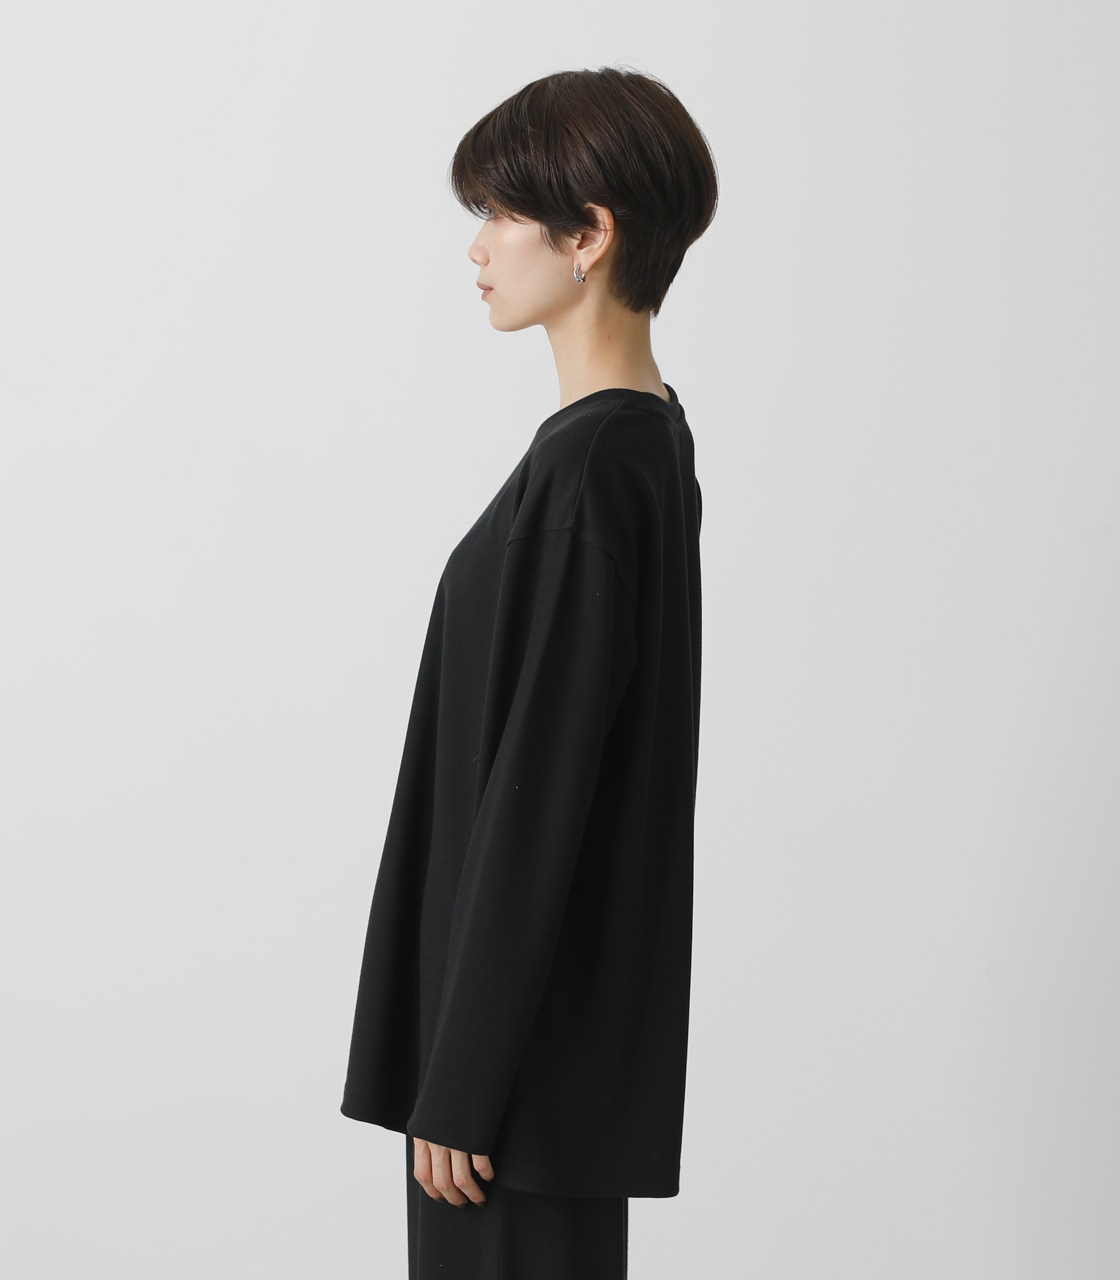 T/H PRINT LONG TEE/T/HプリントロングTシャツ 詳細画像 BLK 6